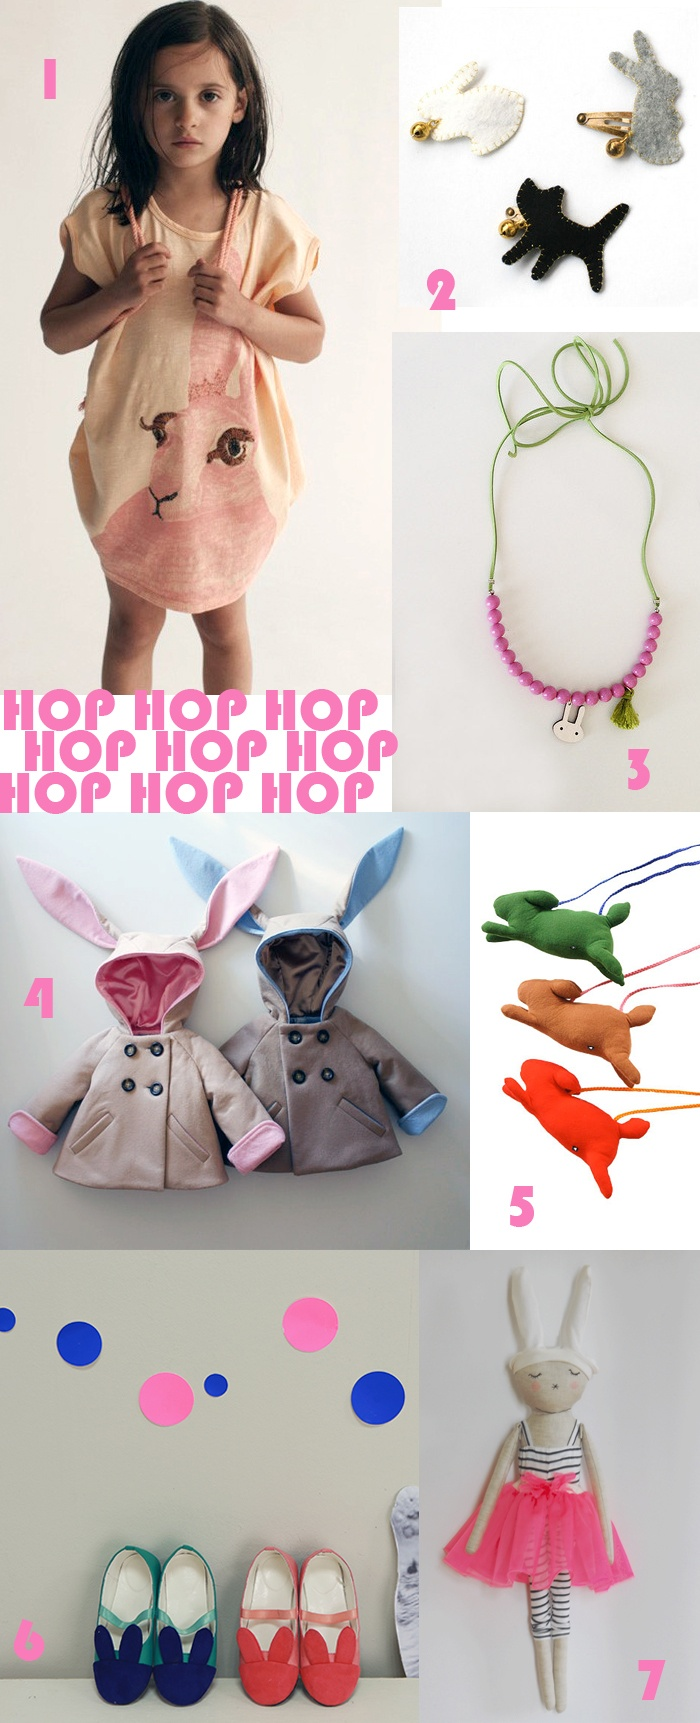 hop hop hop-  bunny kids fashion and accessories round up